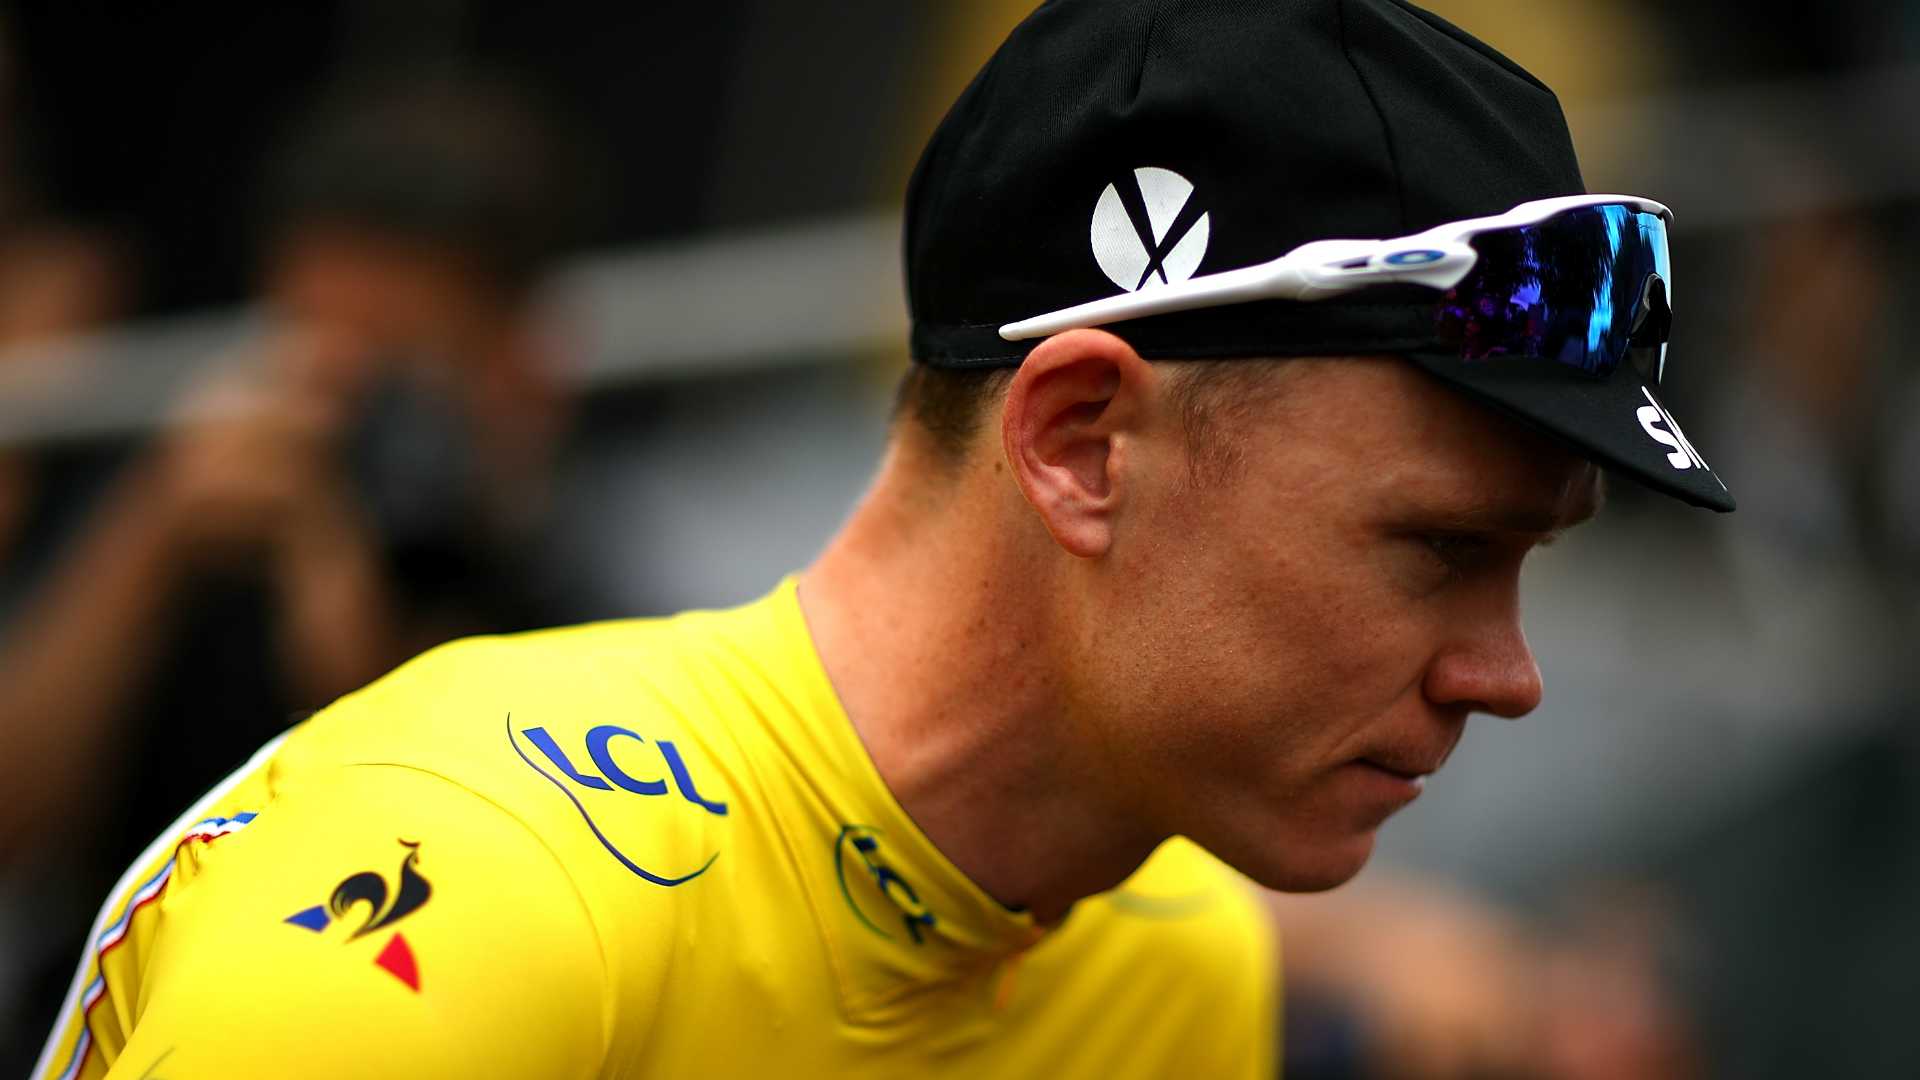 Froome undergoes eight-hour surgery after horror crash